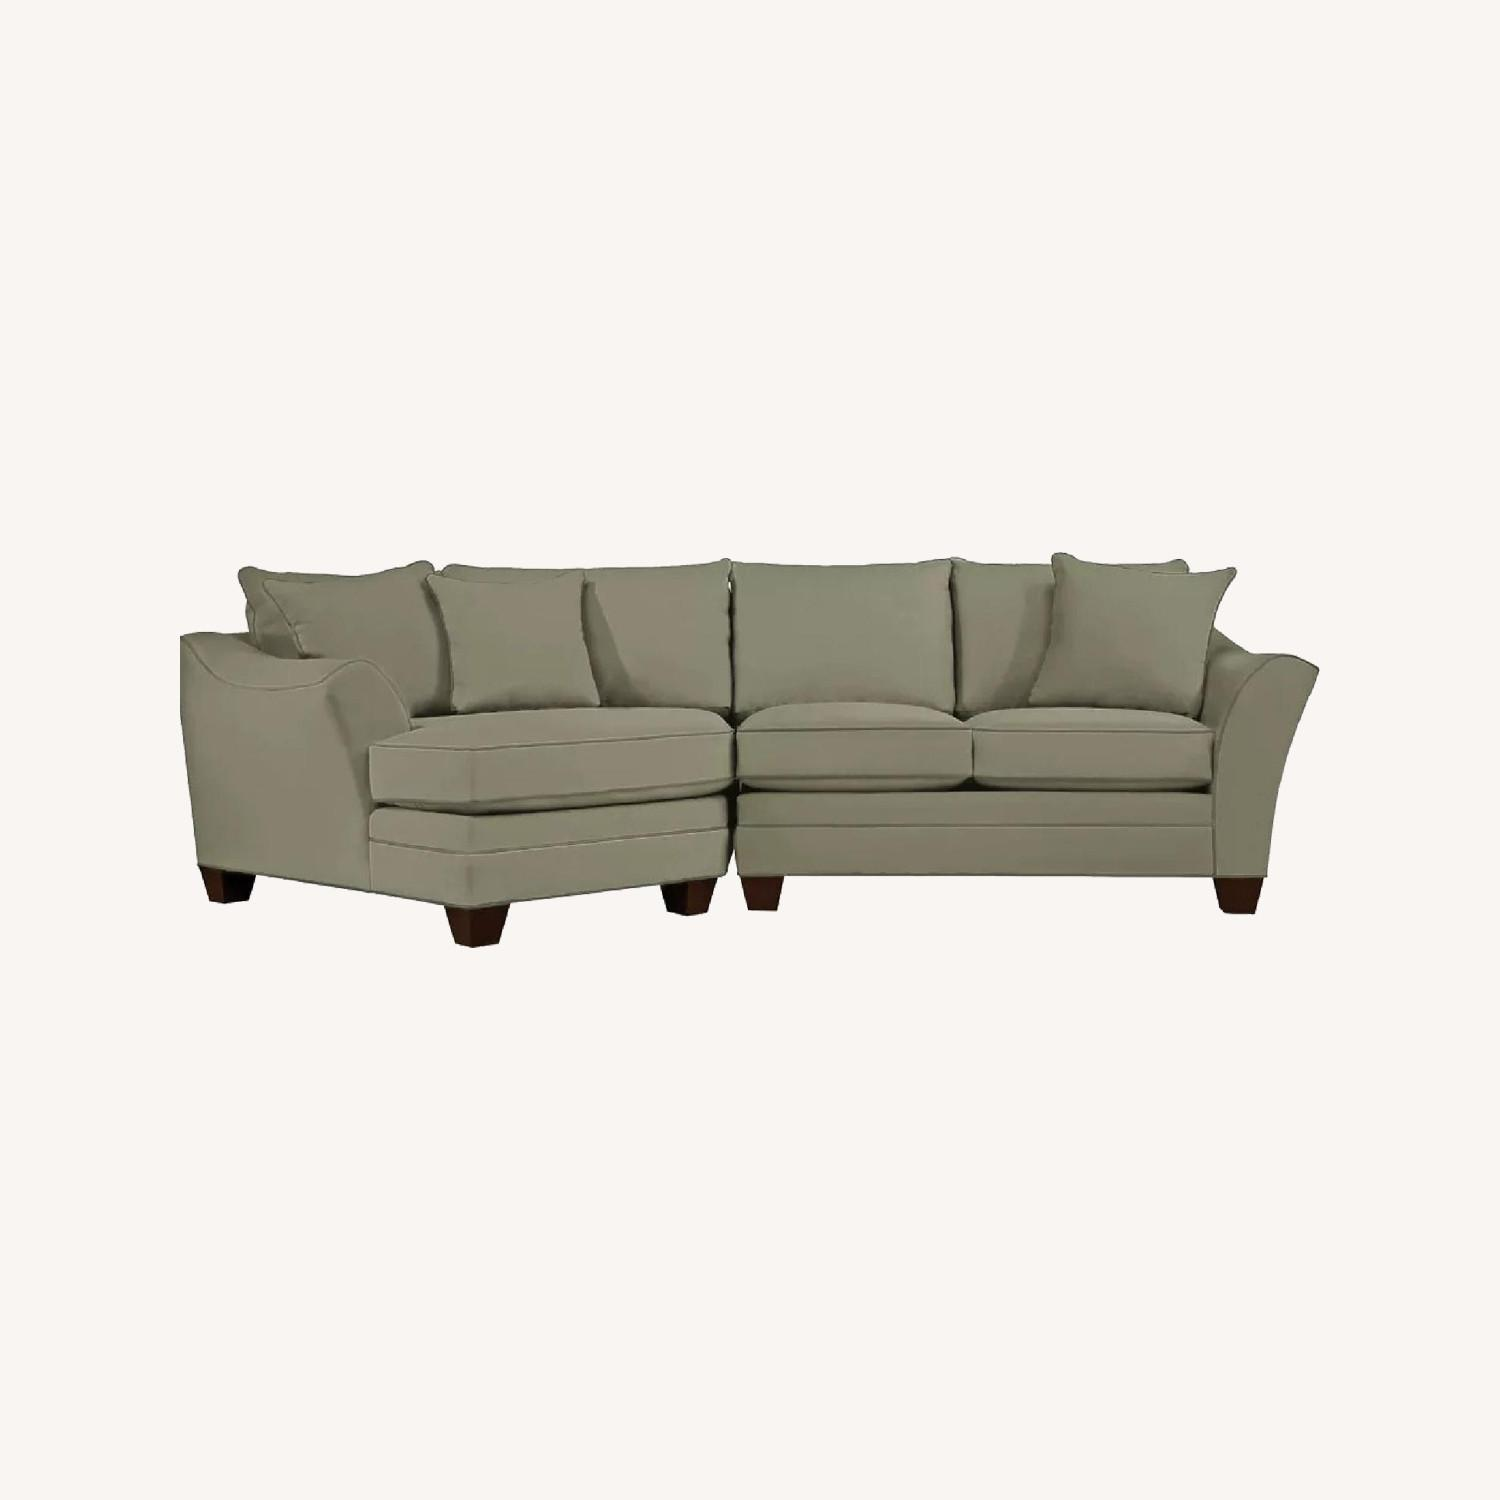 Raymour & Flanigan 2 Piece Sectional w/Cuddler - image-0